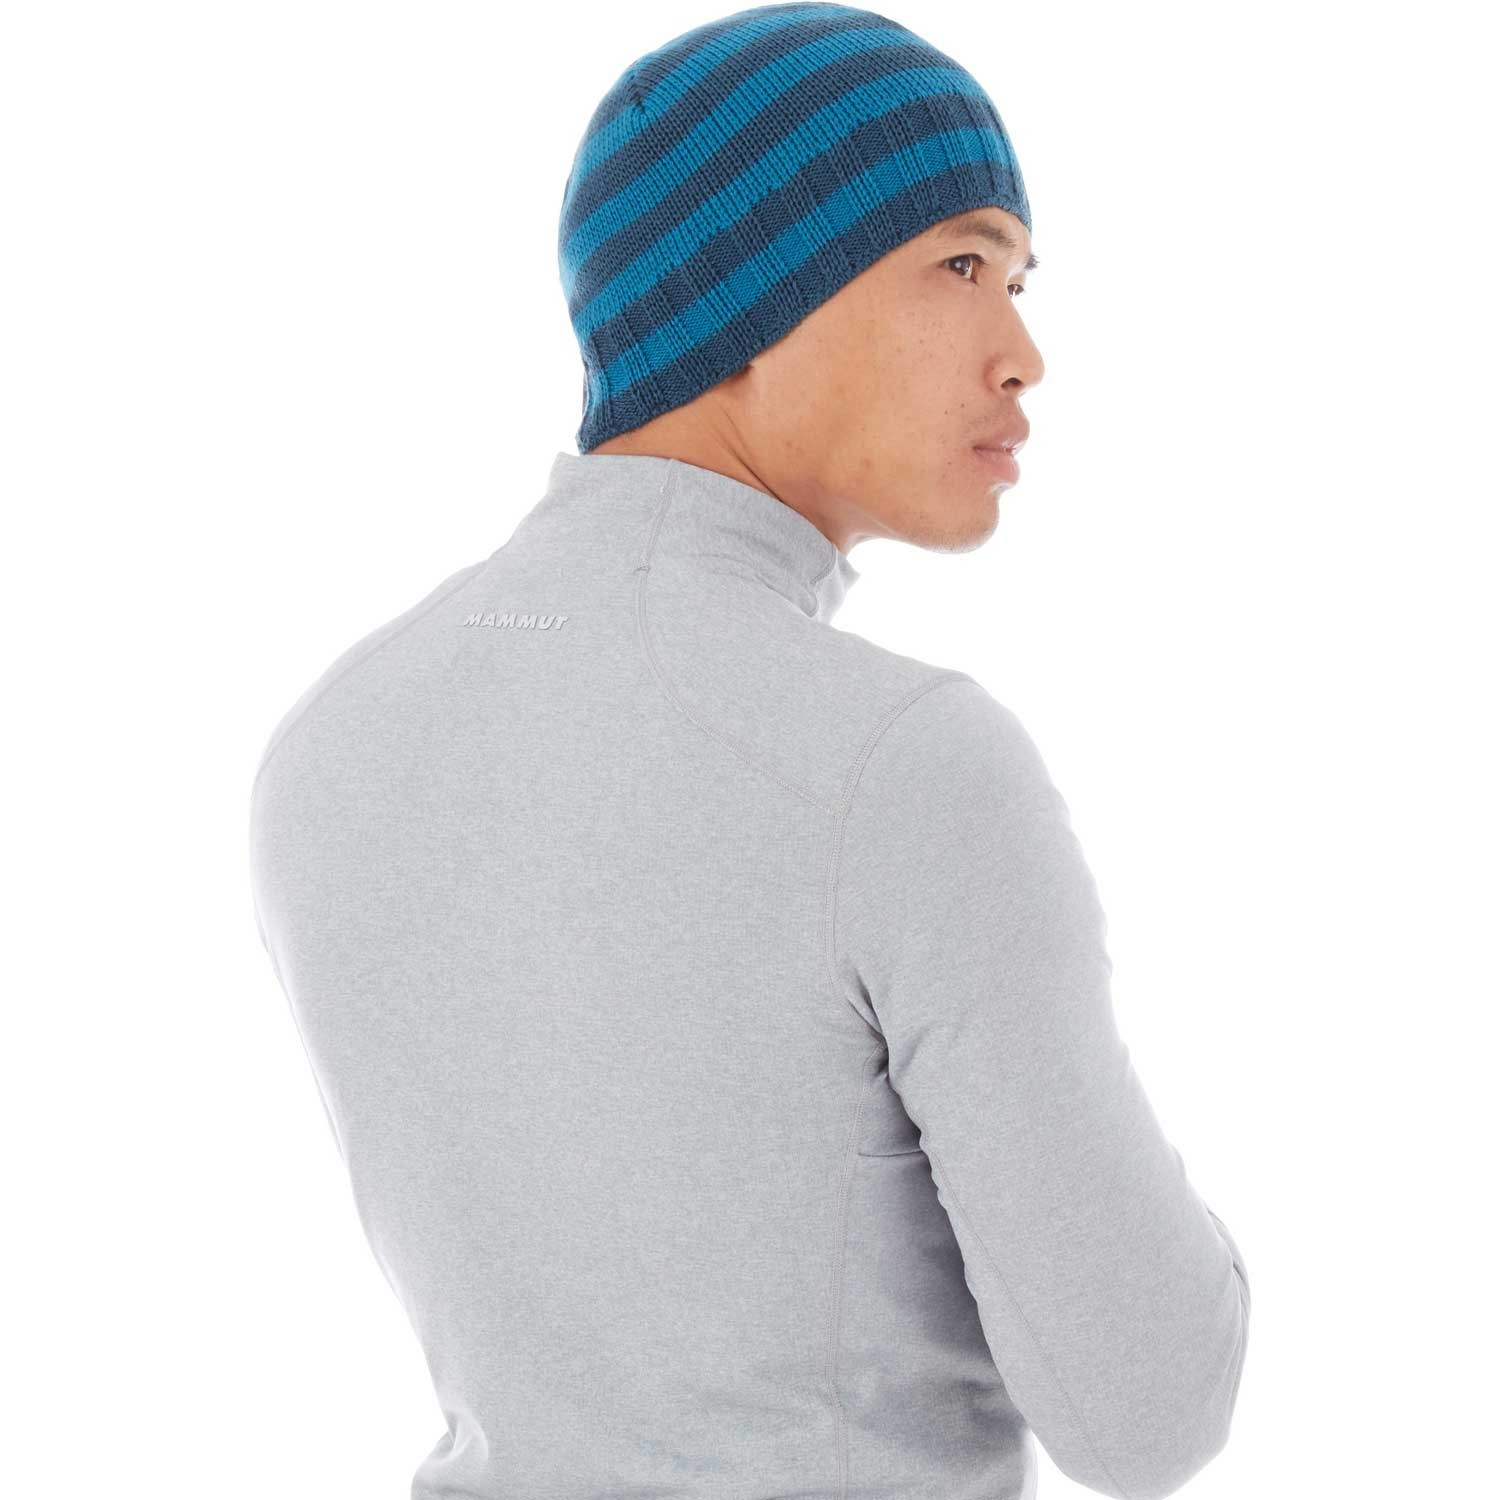 Mammut Passion Beanie - Wing Teal/Sapphire